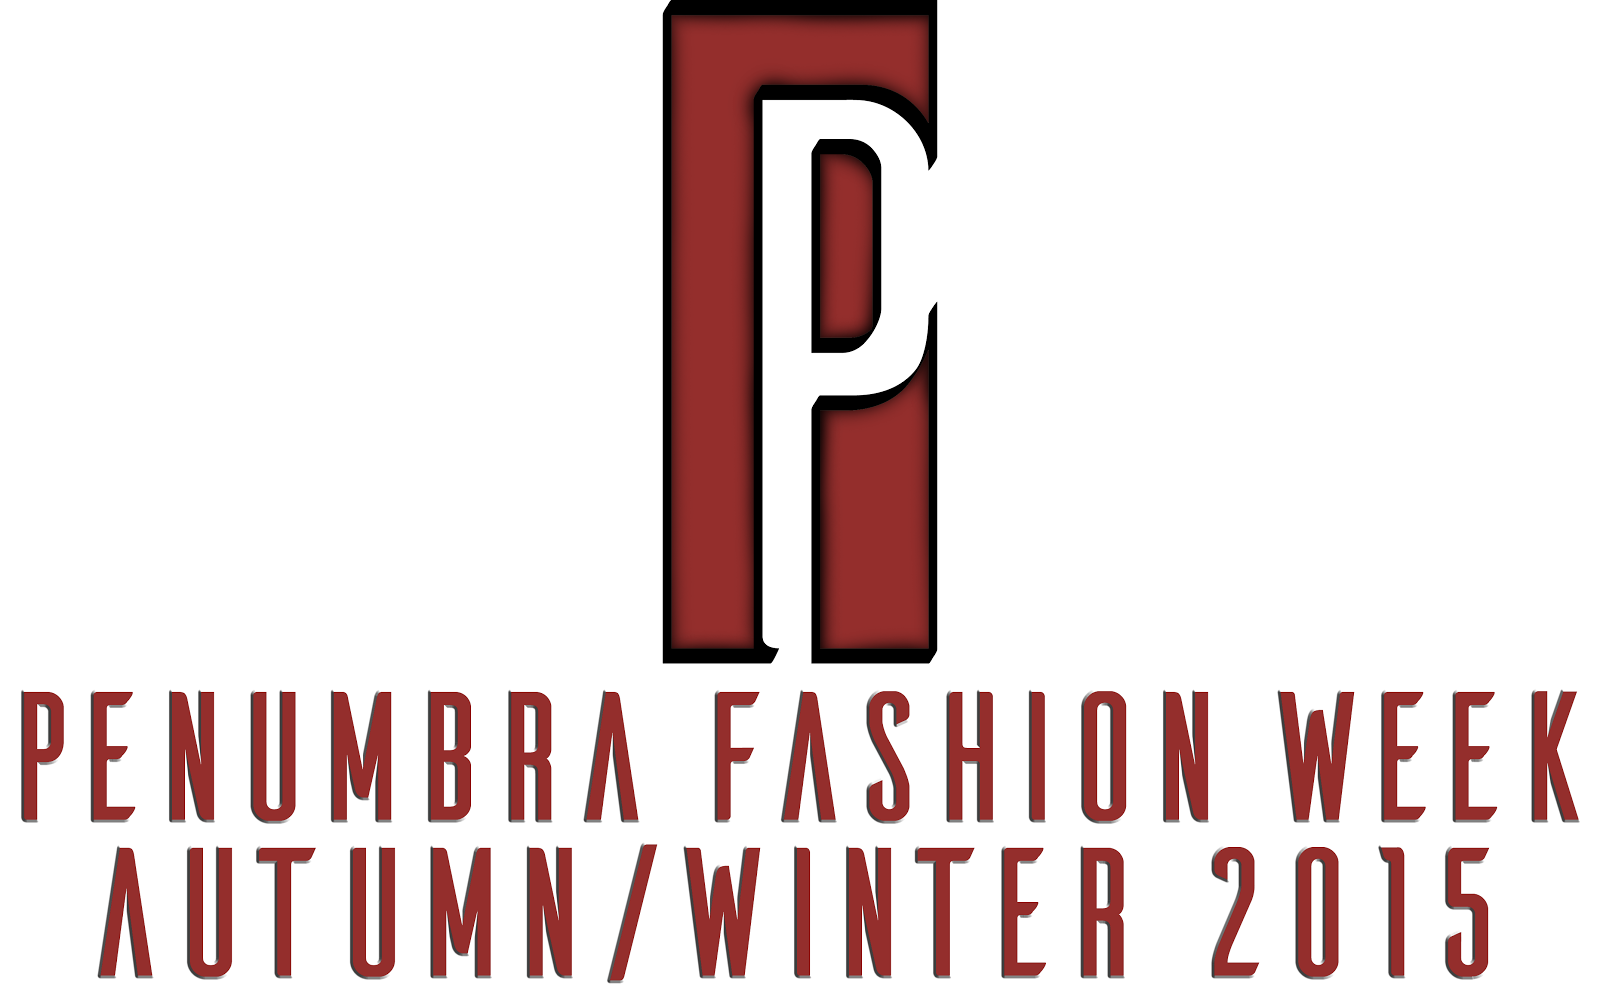 Blogger for Penumbra Fashion Week A/W 15